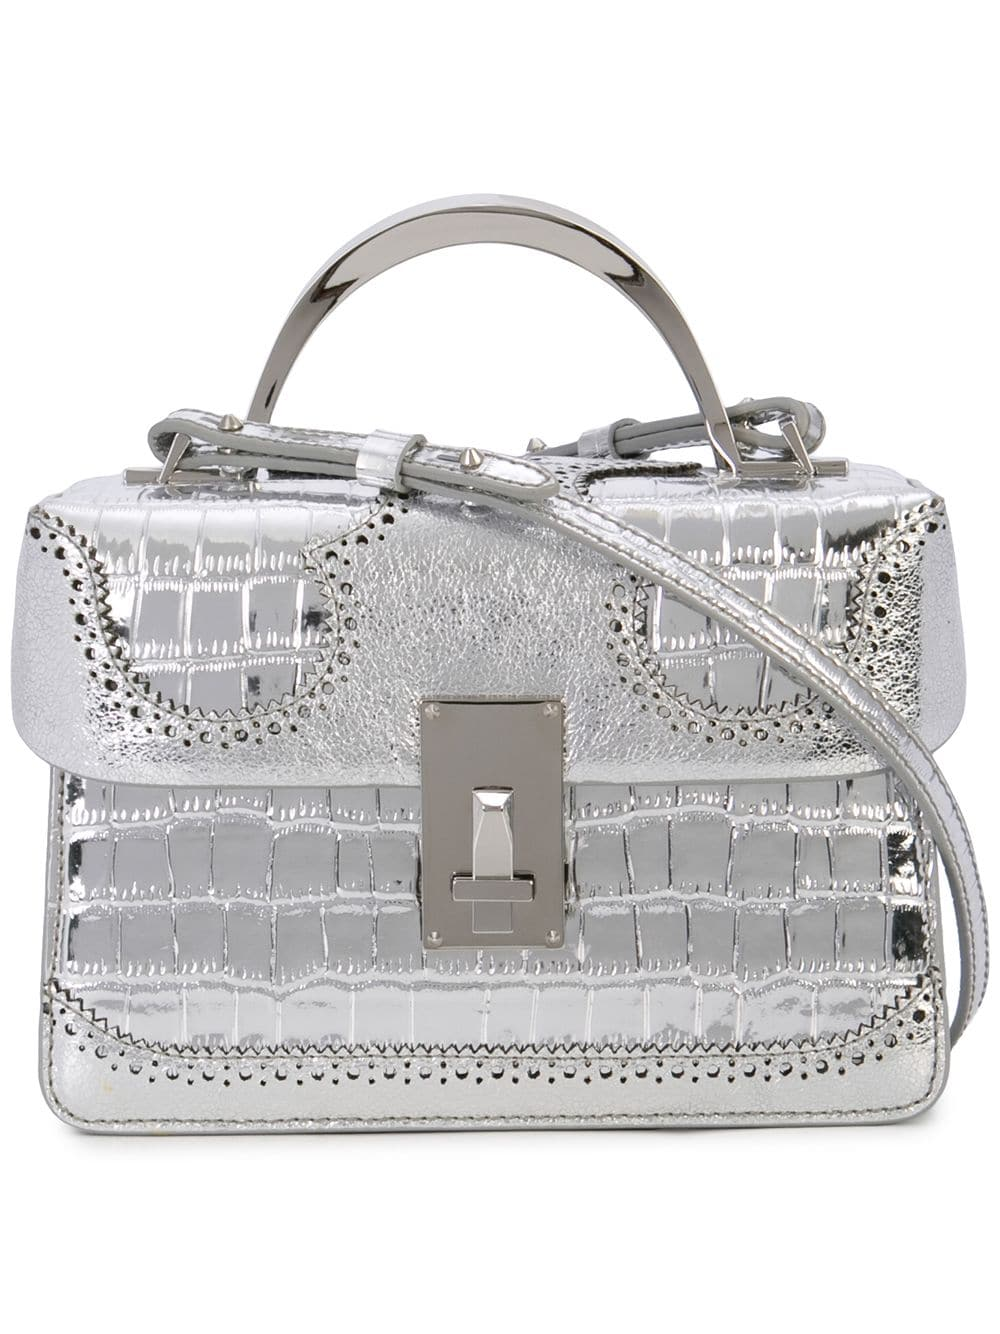 The Volon 'Data Alice' Handtasche - Silber